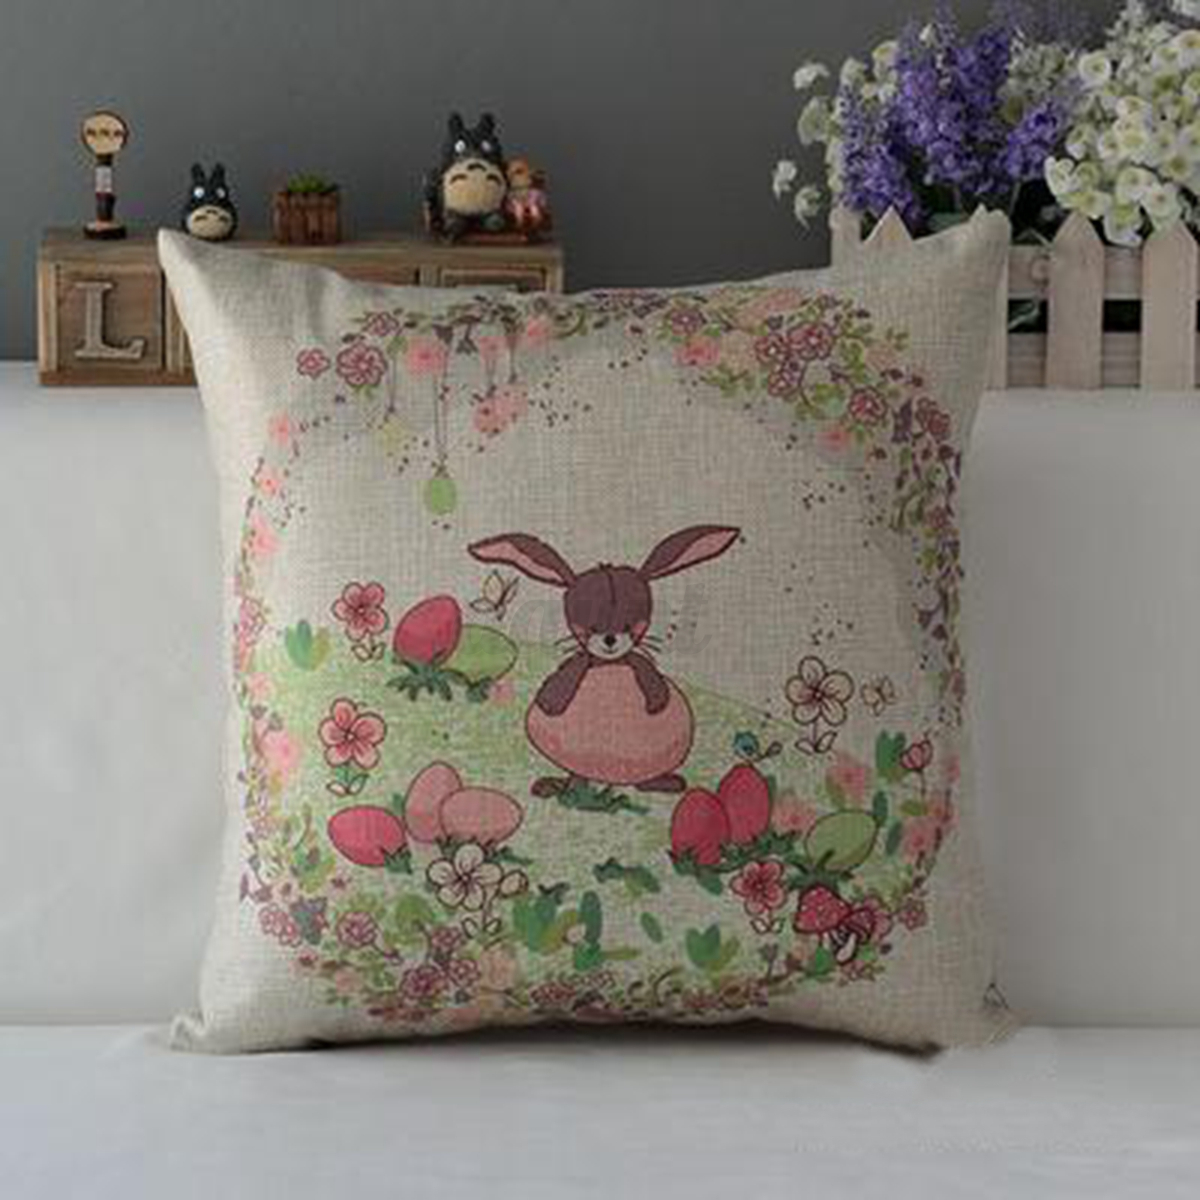 Http Www Ebay Com Itm Easter Day Egg Rabbit Bunny Home Decor Cotton Linen Pillow Case Cushion Cover 112270947319